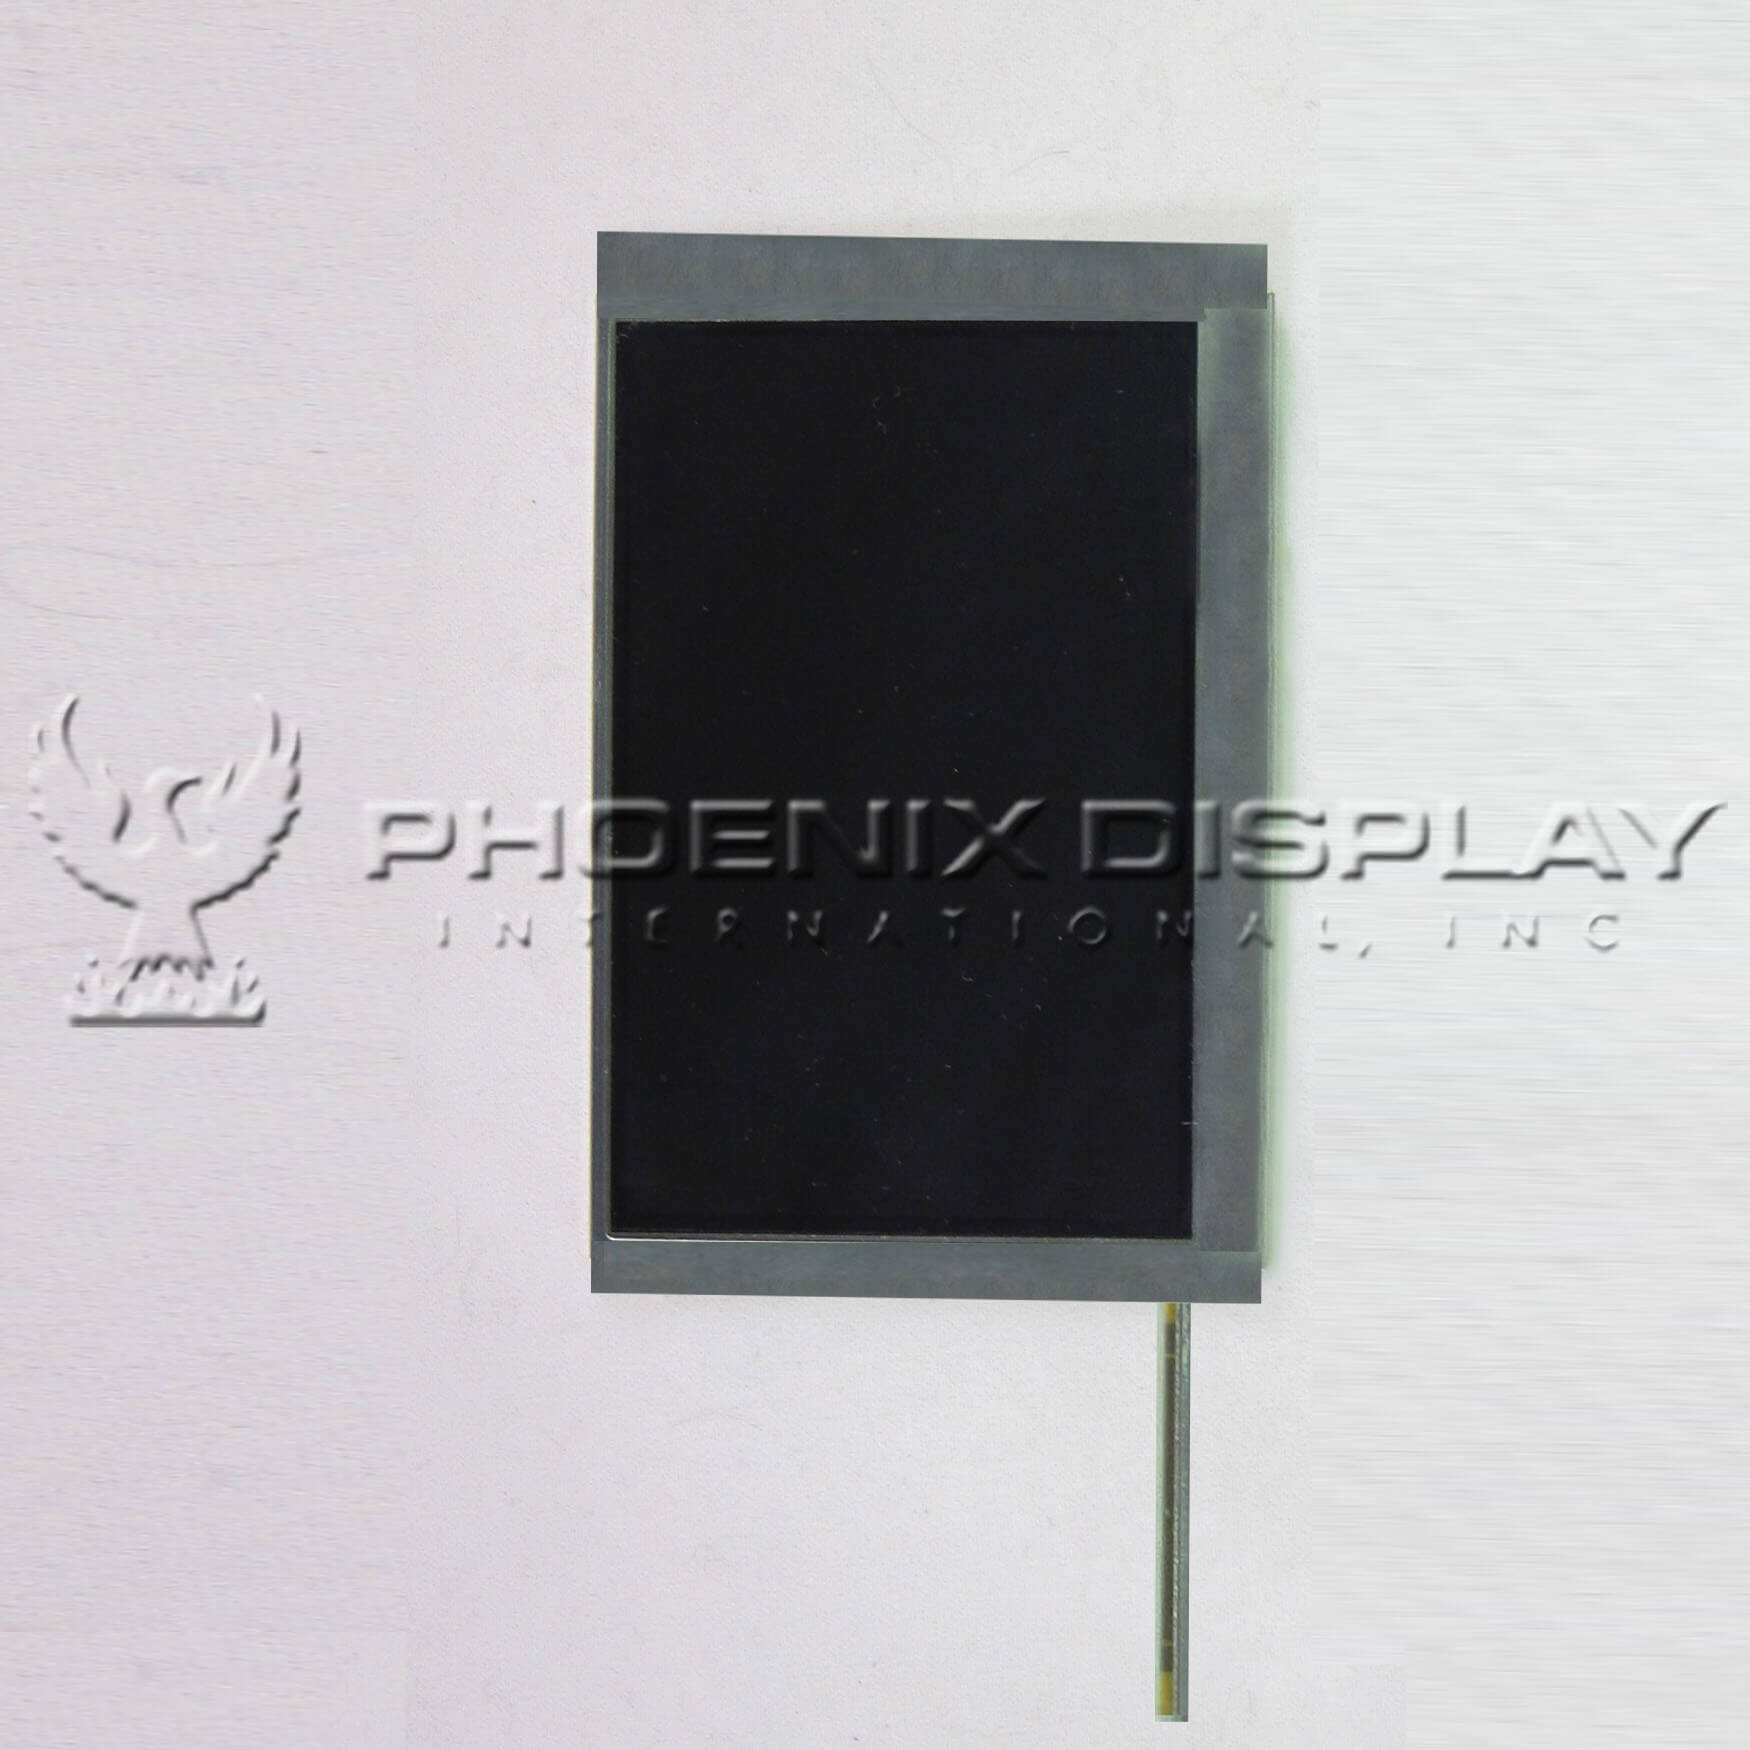 5.7 320 x 240 Transmissive Color TFT Display | PDI057H01 | Phoenix Display International